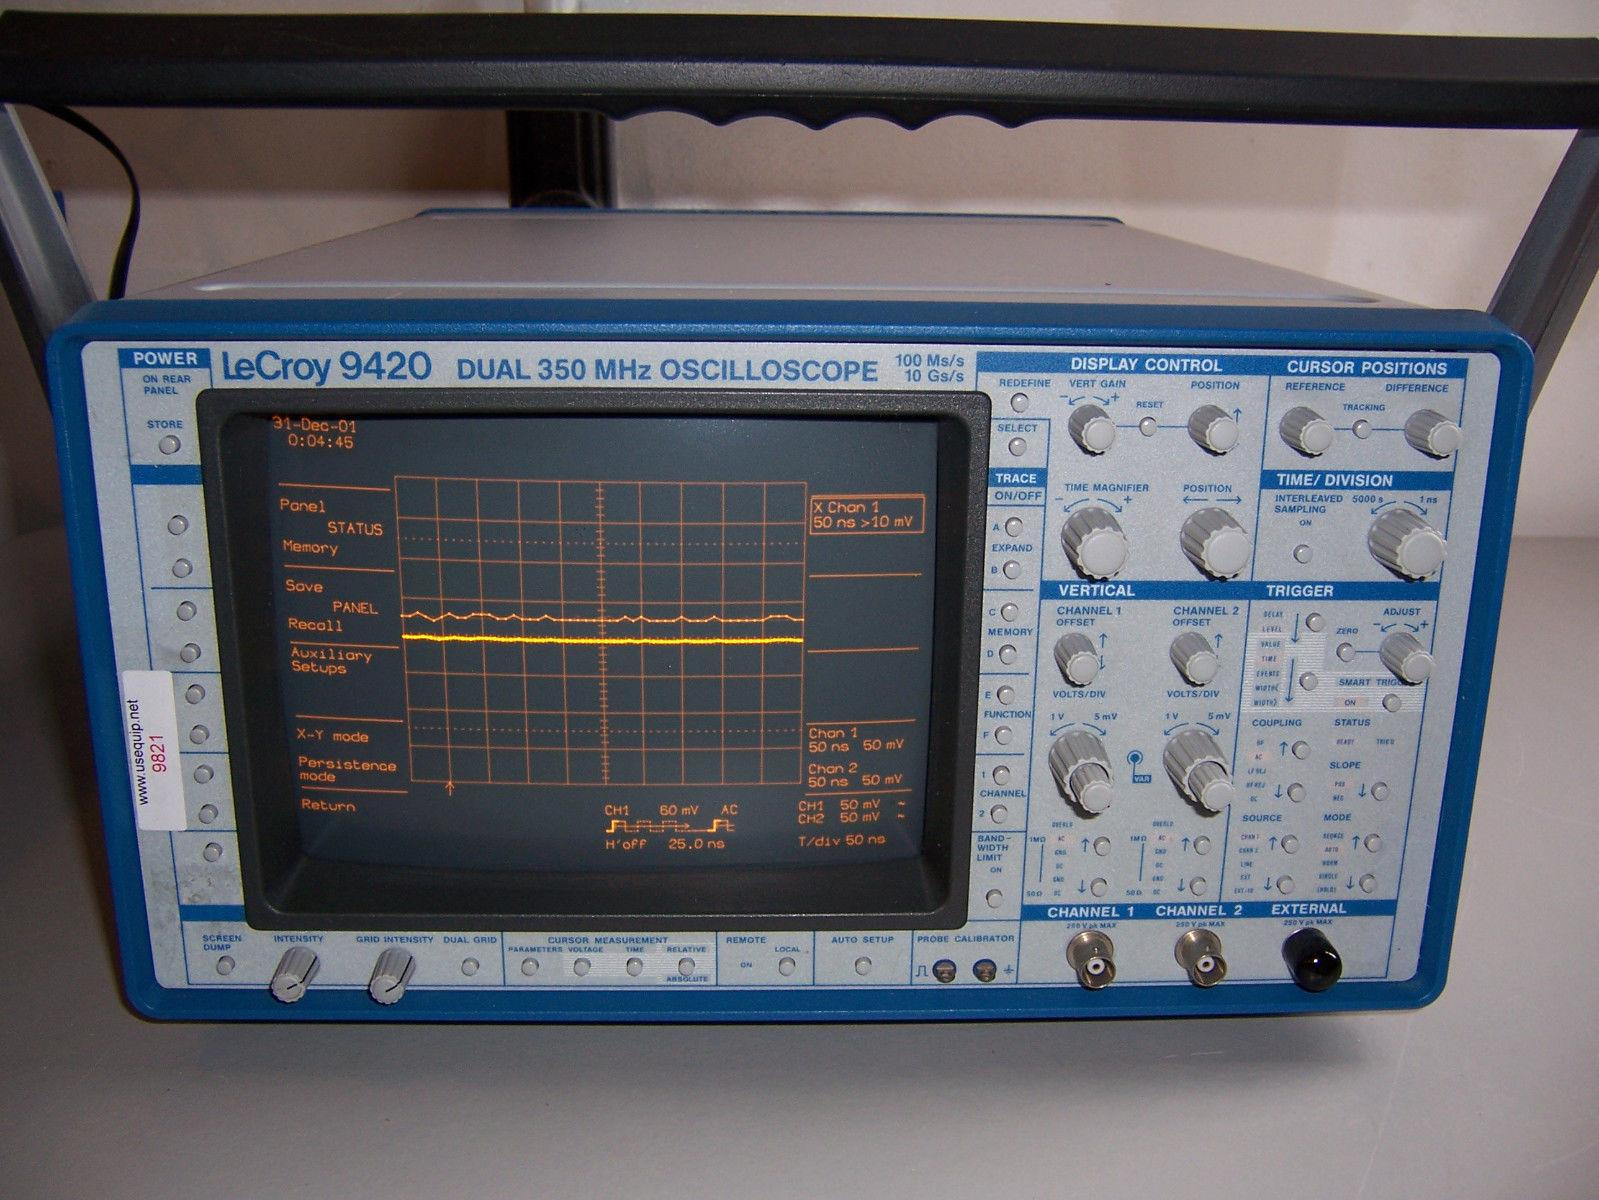 9821 LECROY 9420 DUAL 350MHZ OSCILLOSCOPE 100 MS/S - 10 GS/S 2 CHANNEL